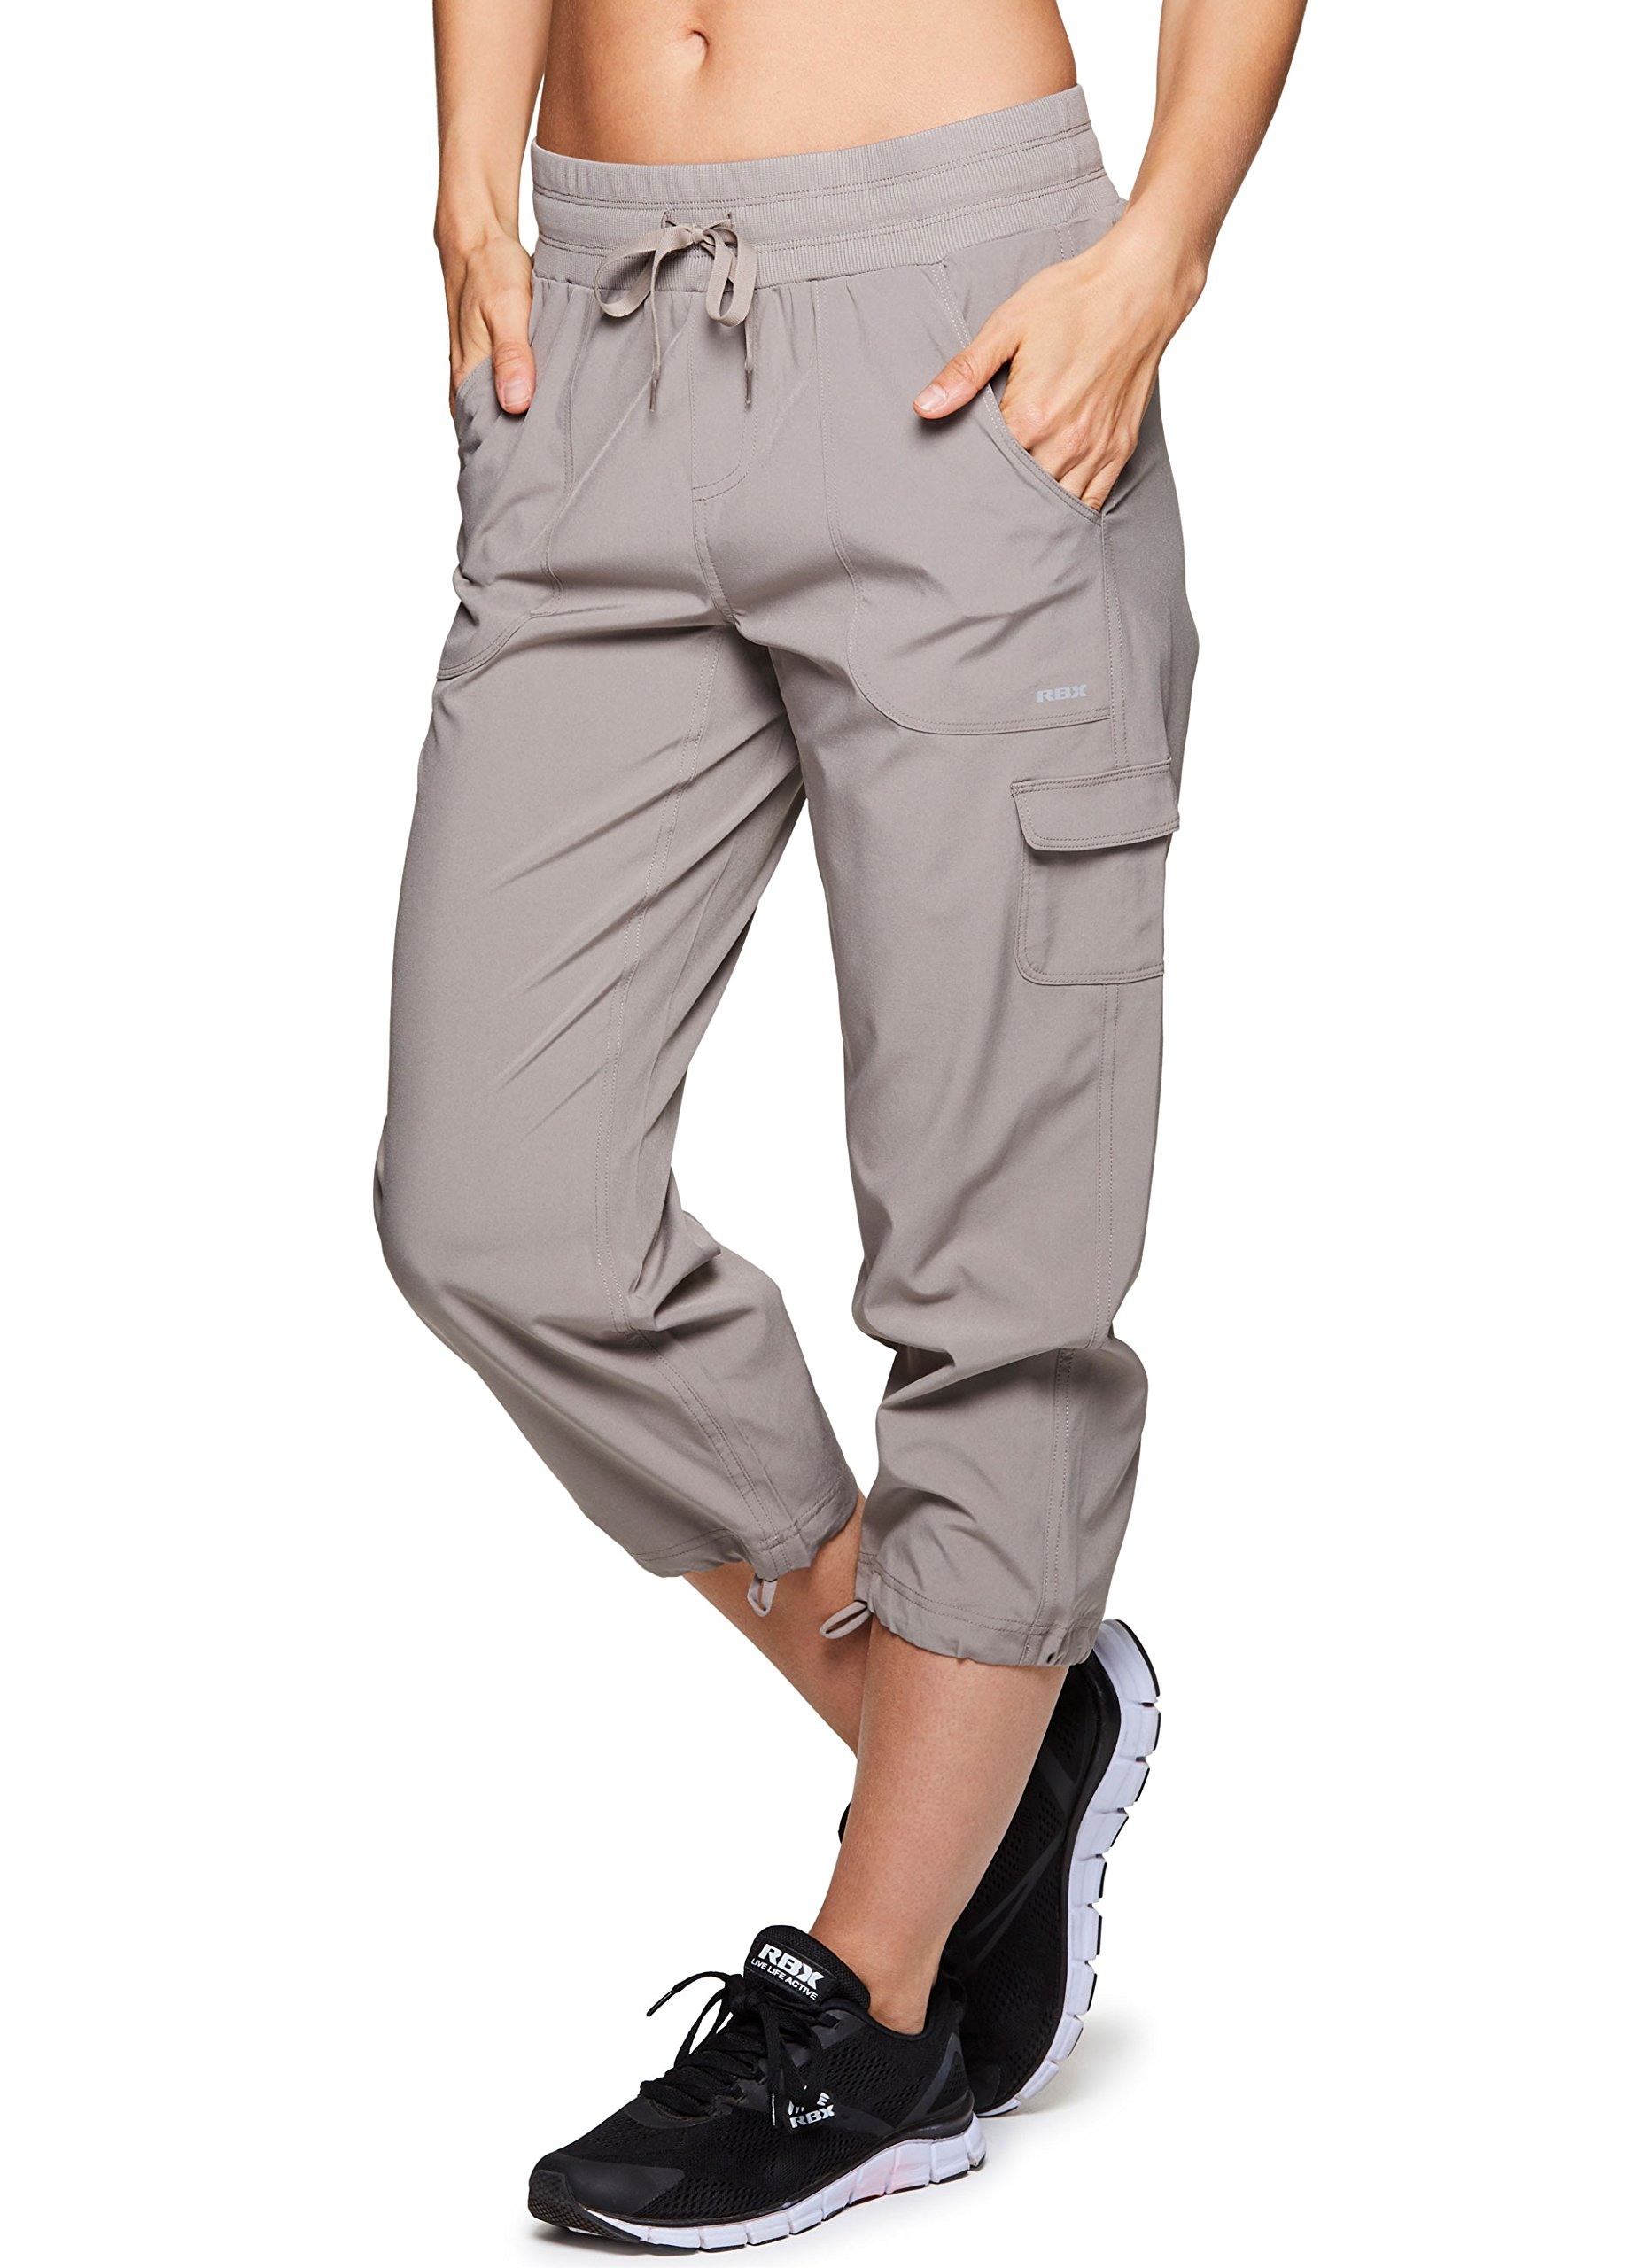 RBX Active Women's Lightweight Body Skimming Drawstring Woven Pant Khaki L